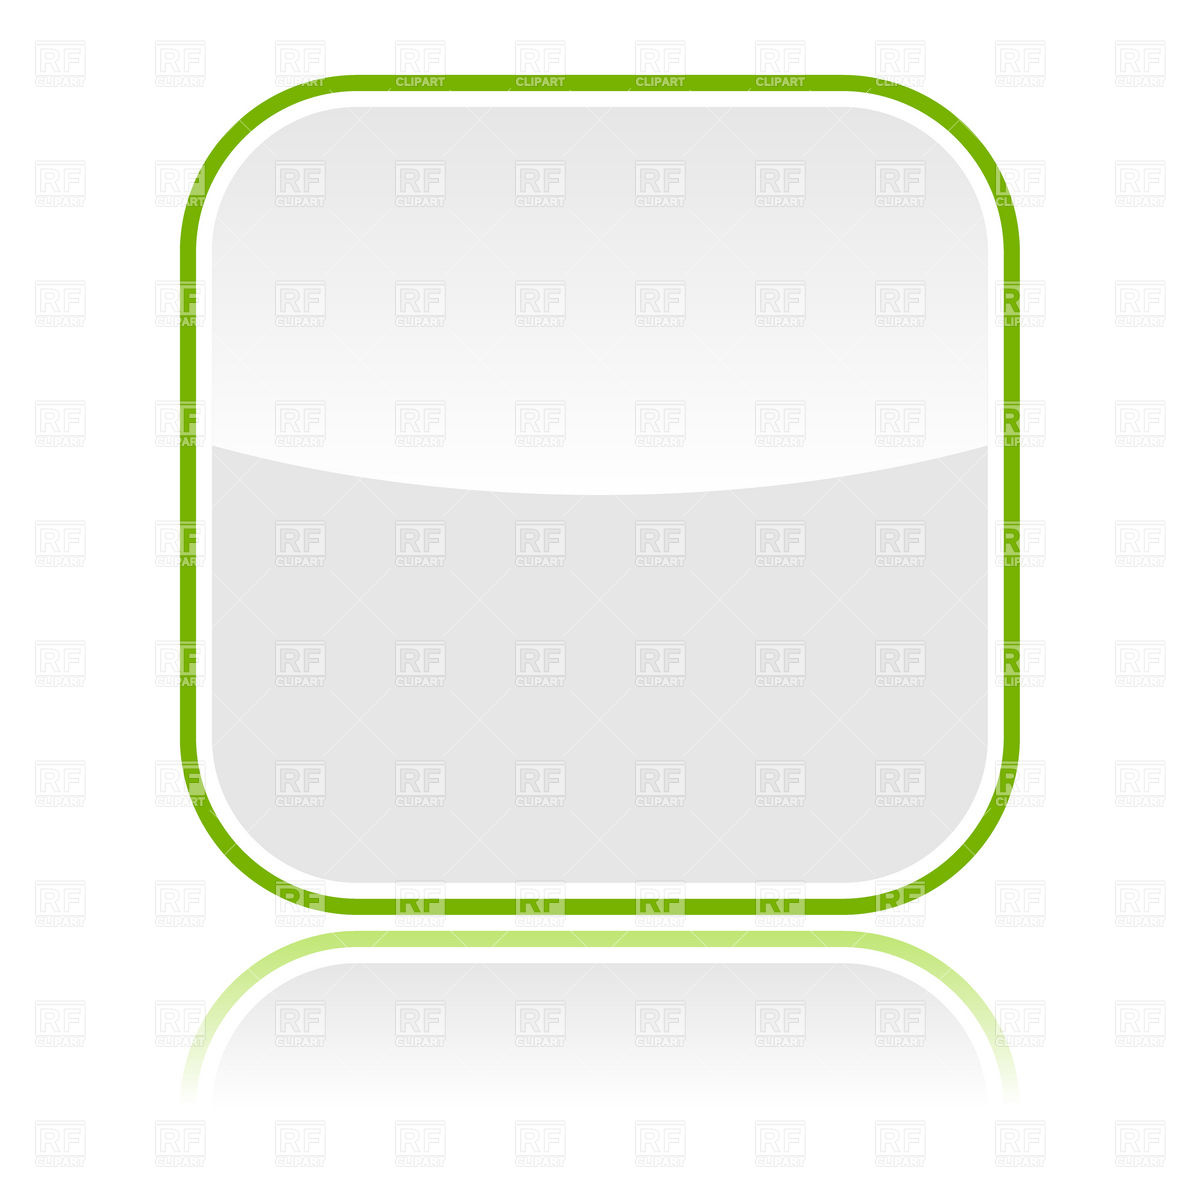 White square button template with rounded corners Vector Image.